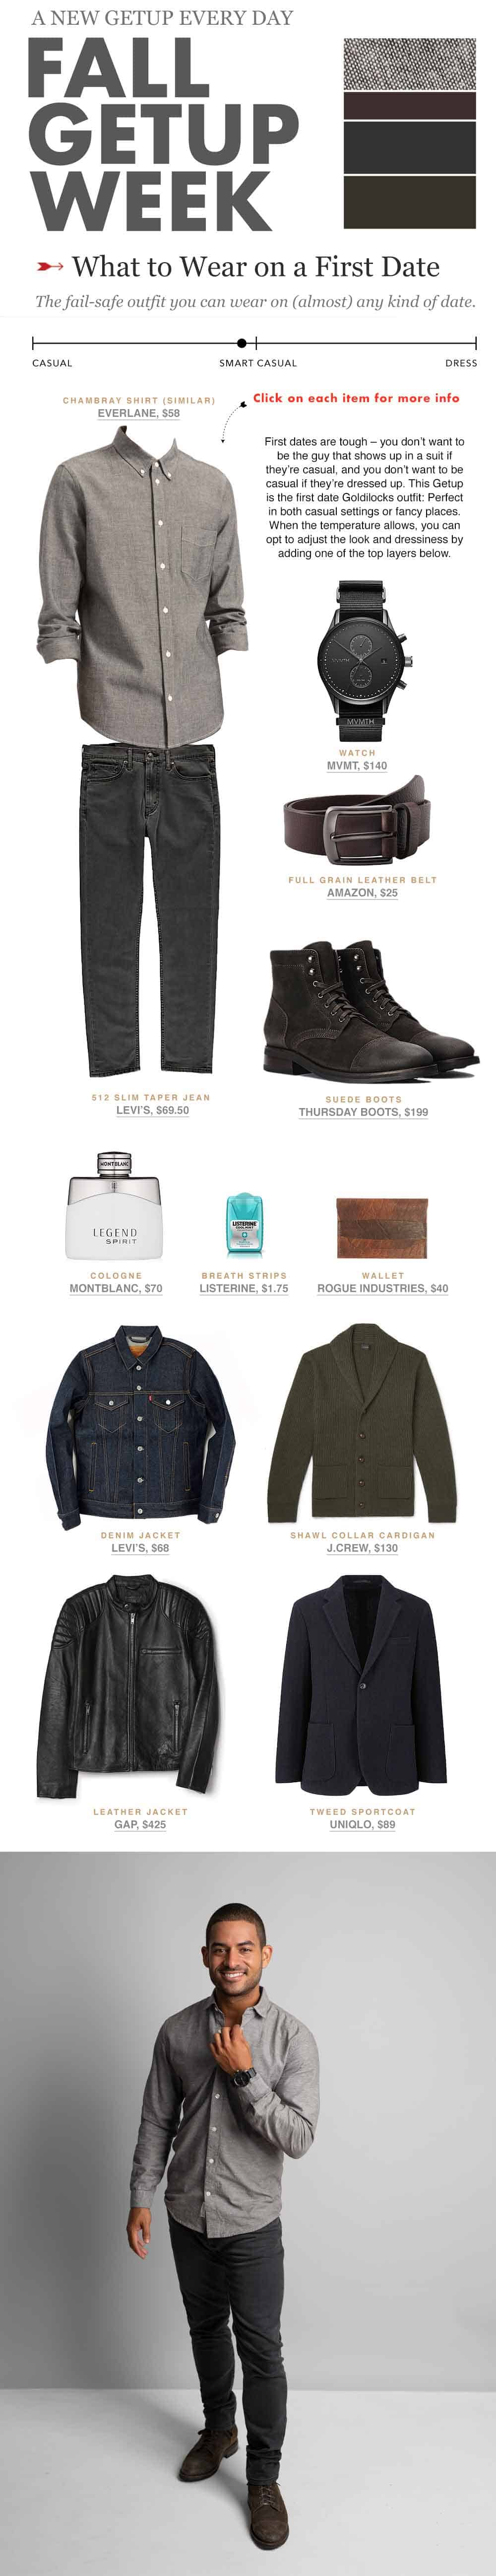 what to wear on a first date   men's outfit ideas Fall Getup Week infographic